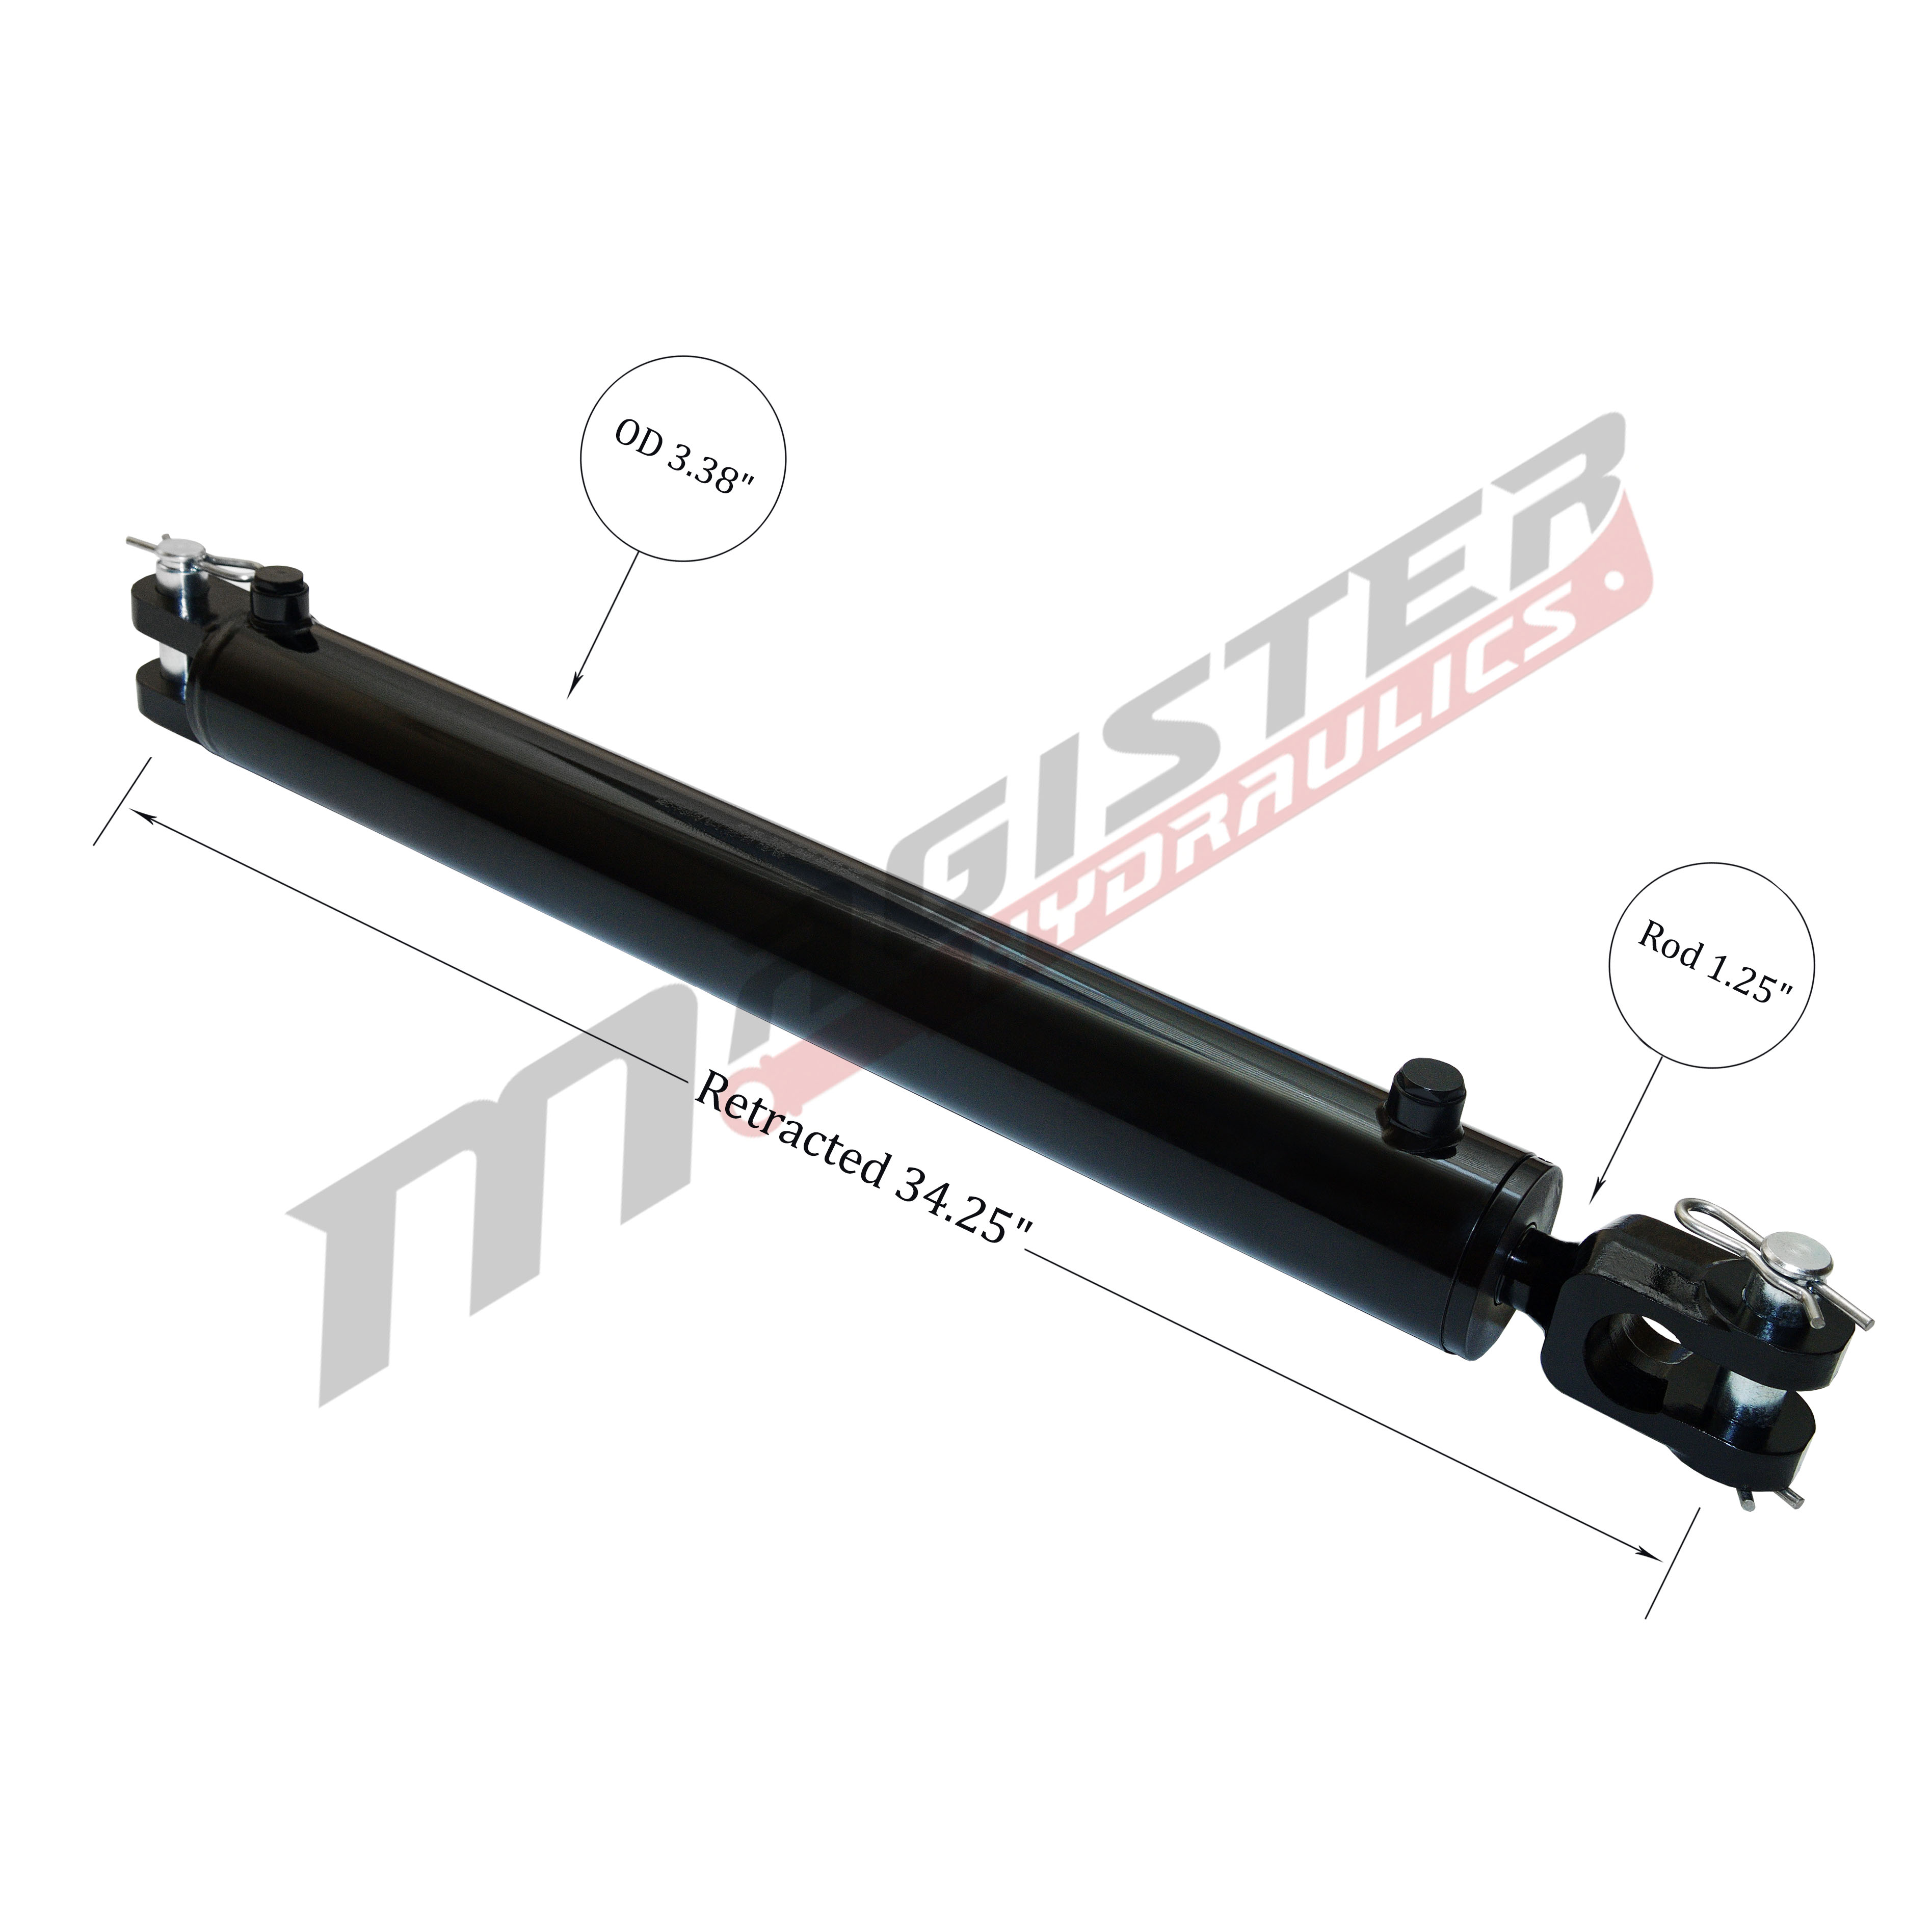 3 bore x 24 stroke hydraulic cylinder, ag clevis double acting cylinder | Magister Hydraulics